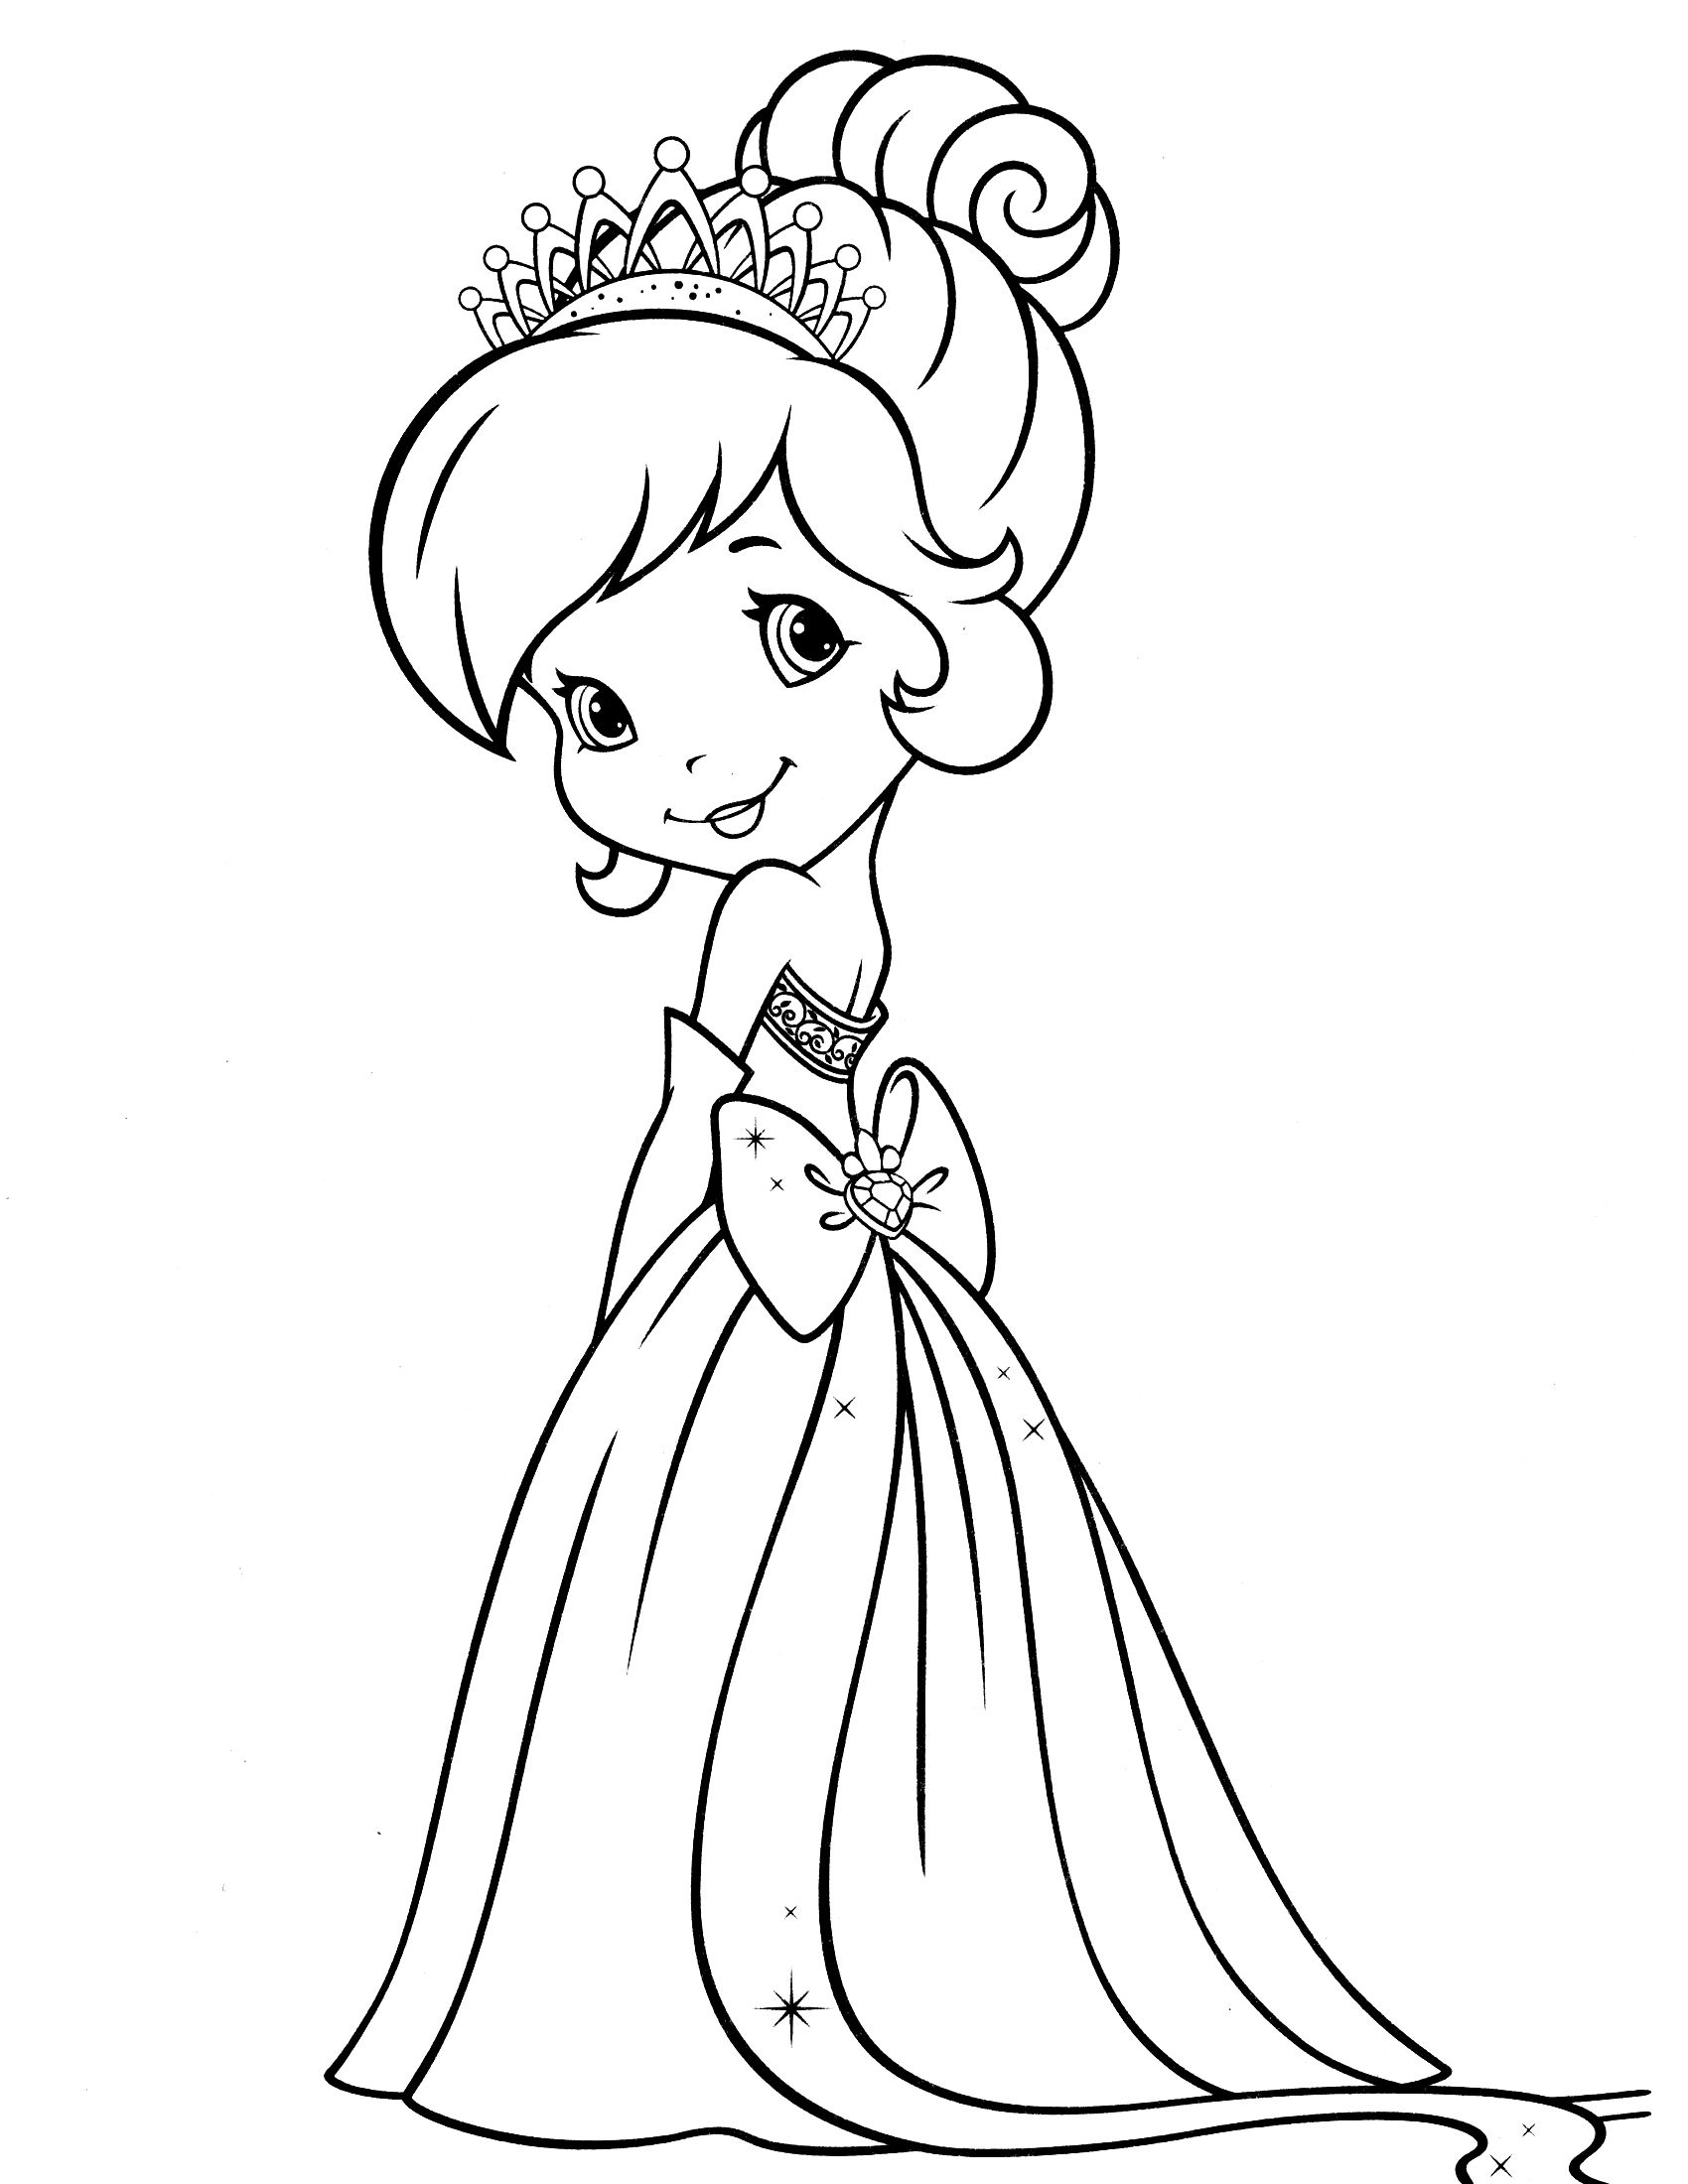 Strawberry Shortcake Coloring Pages Strawberry Shortcake Coloring Pages For Kids Free Printable Activity